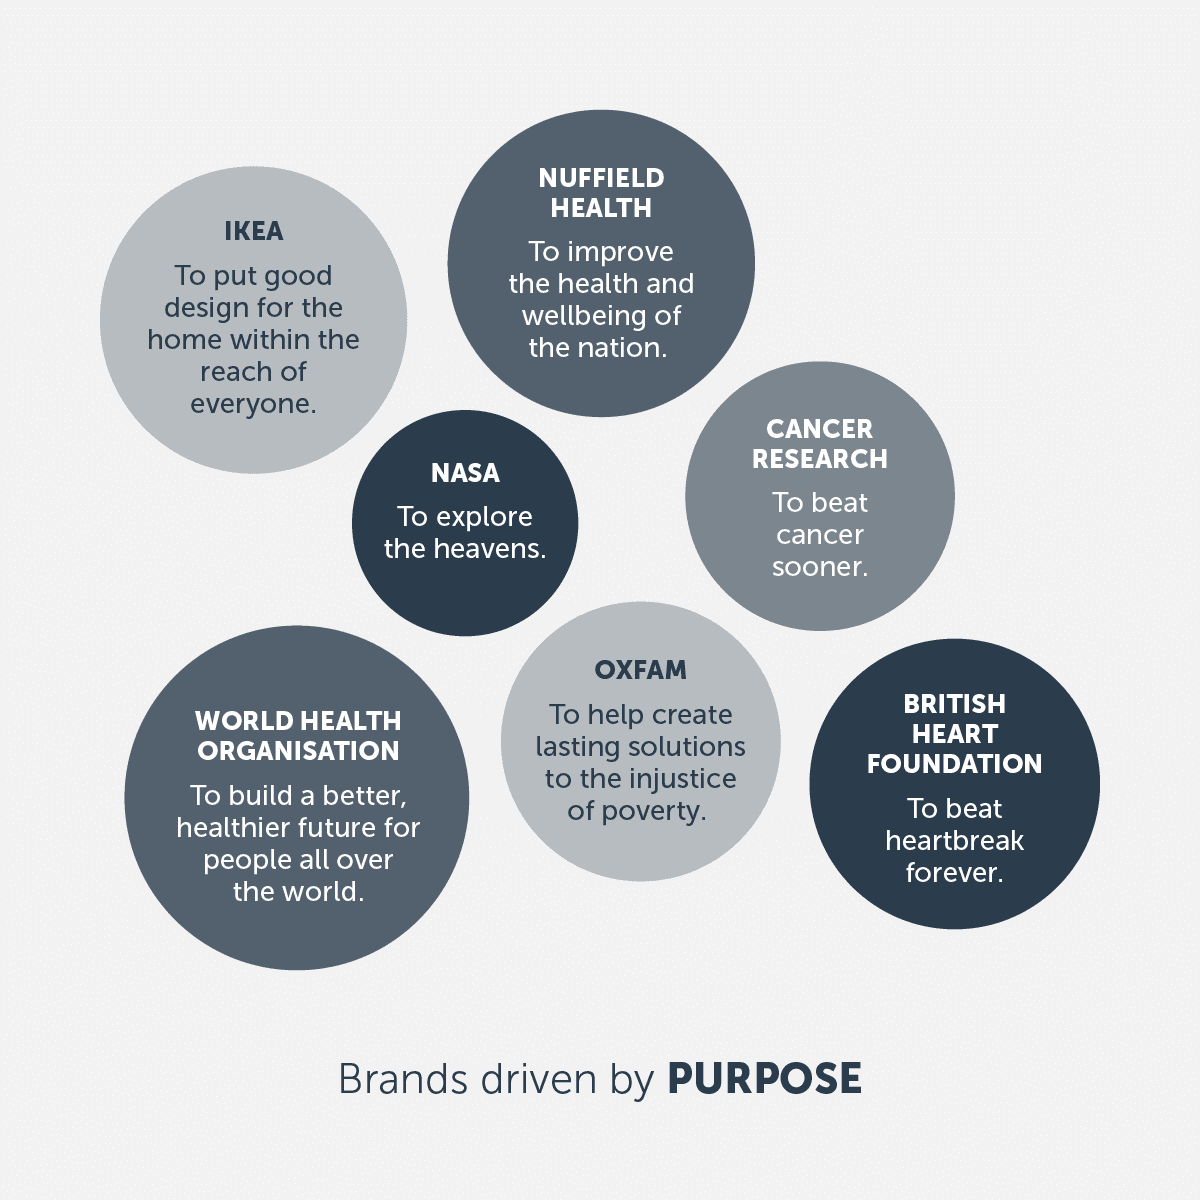 Brands driven by purpose